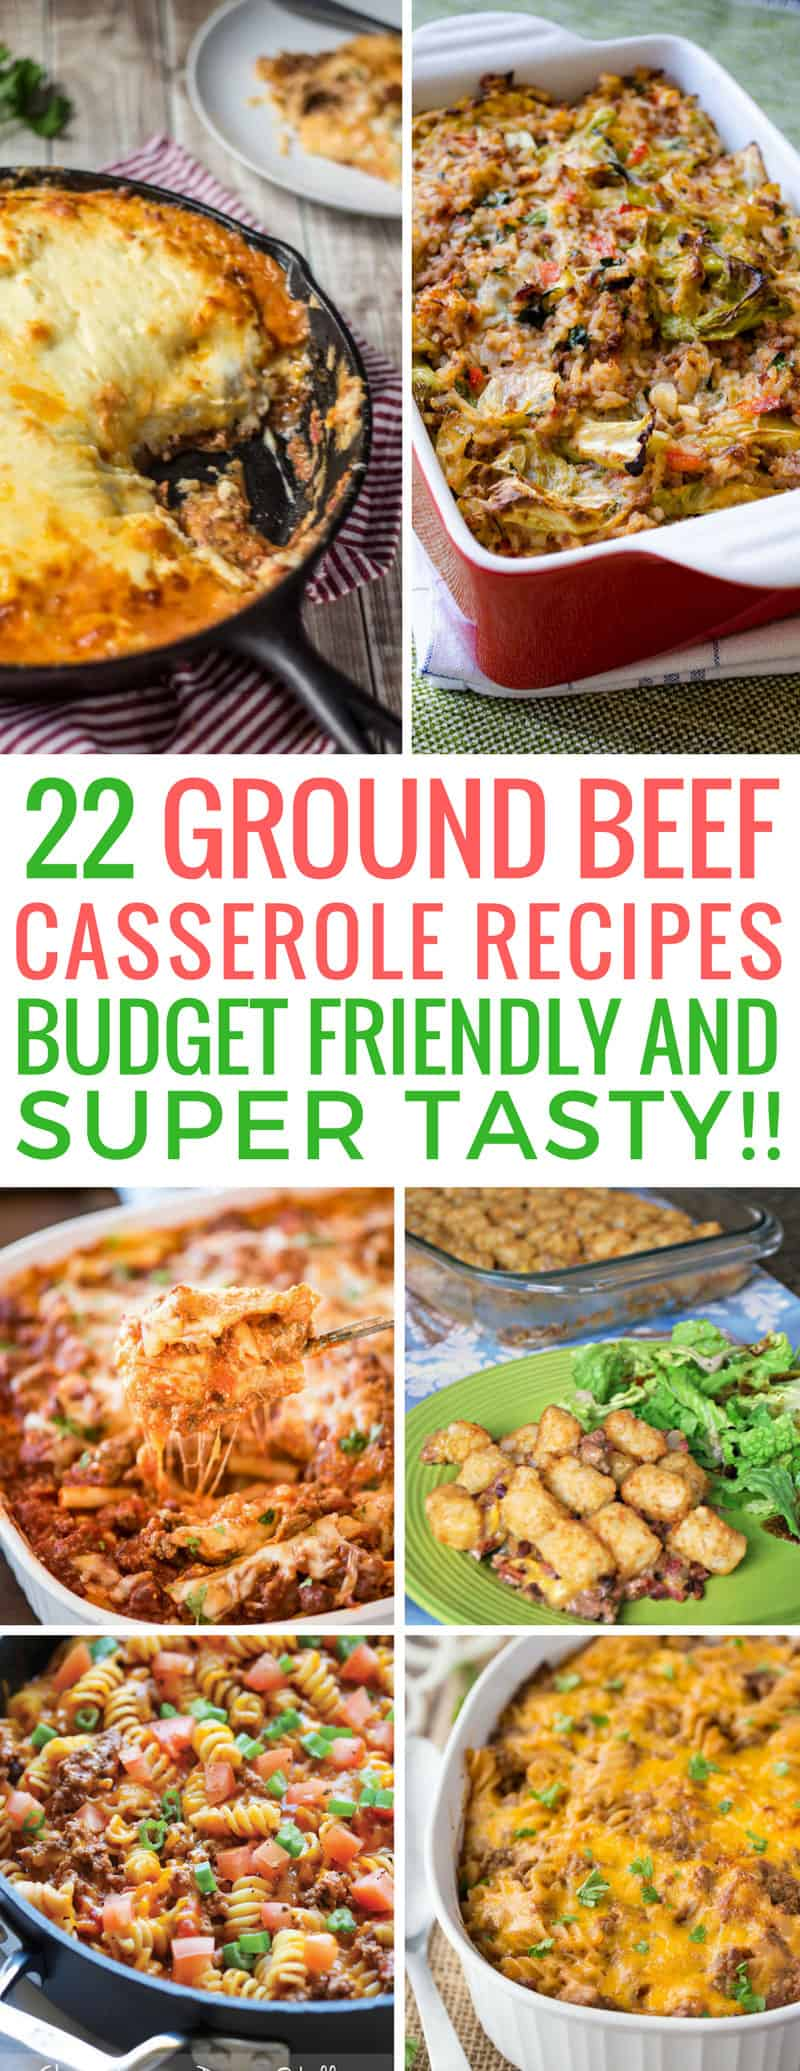 Loving these ground beef casserole recipes - great for my budget! Thanks for sharing!